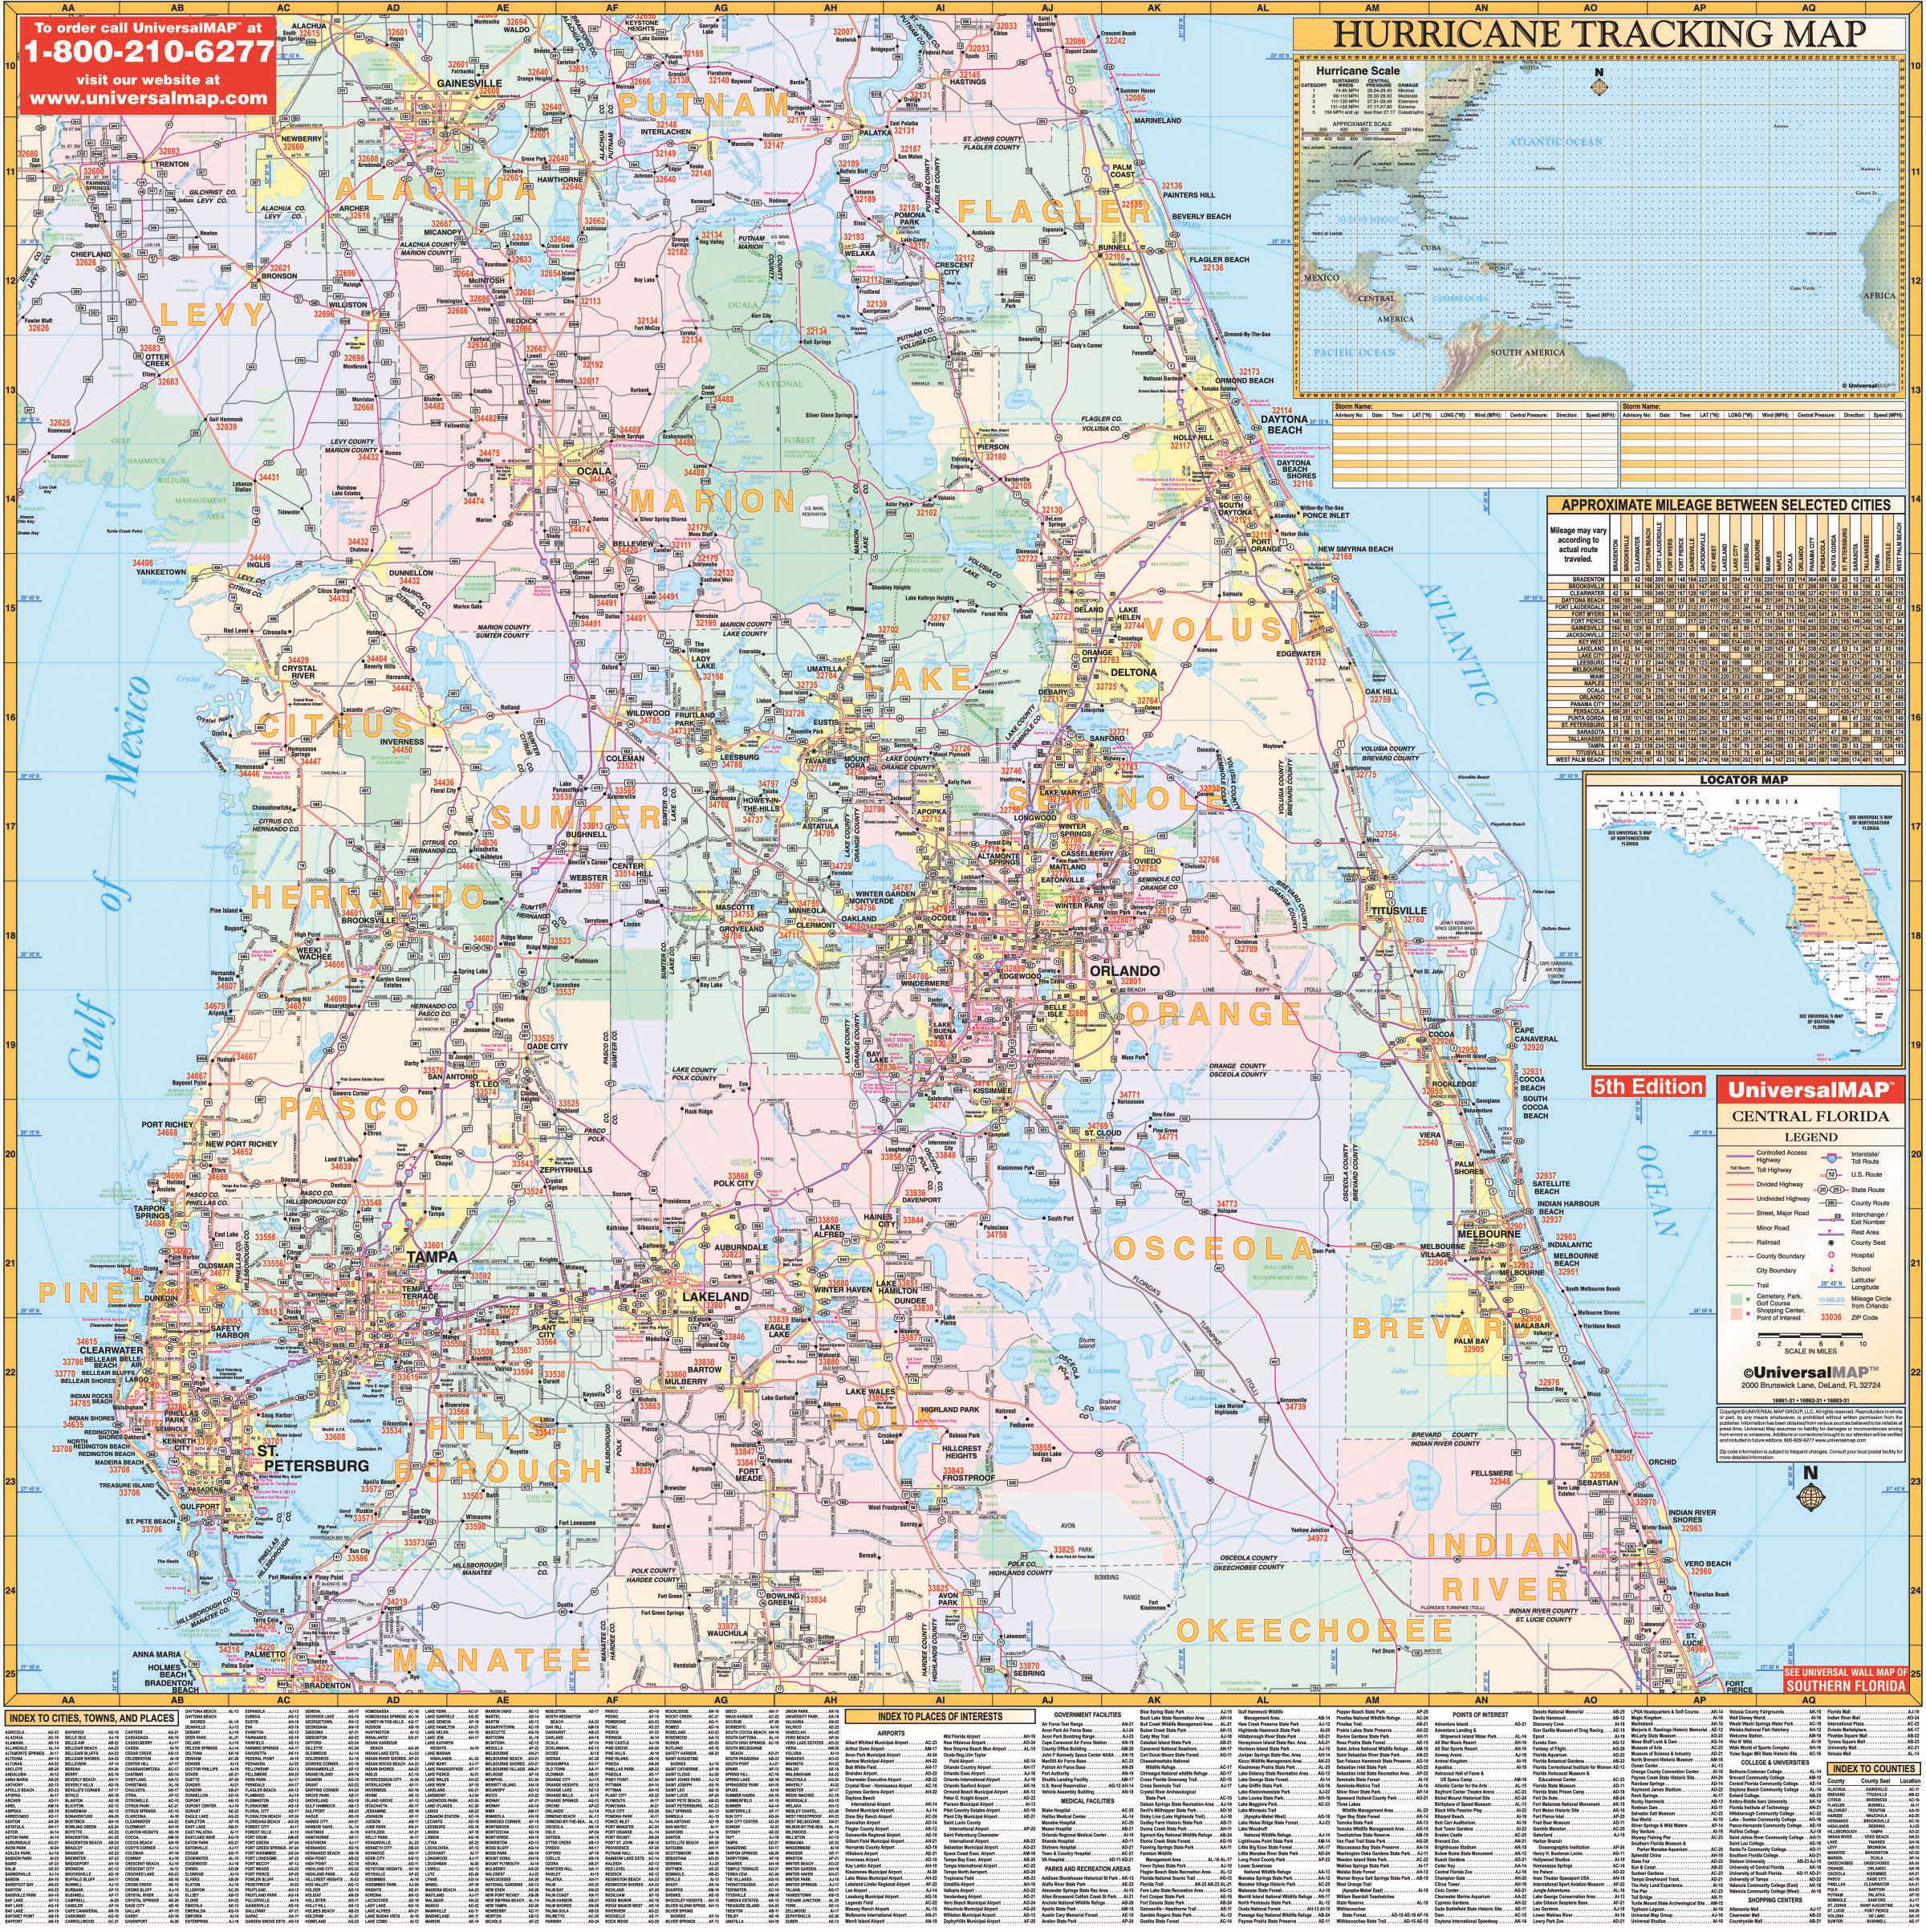 Florida State Central Wall Map – KAPPA MAP GROUP